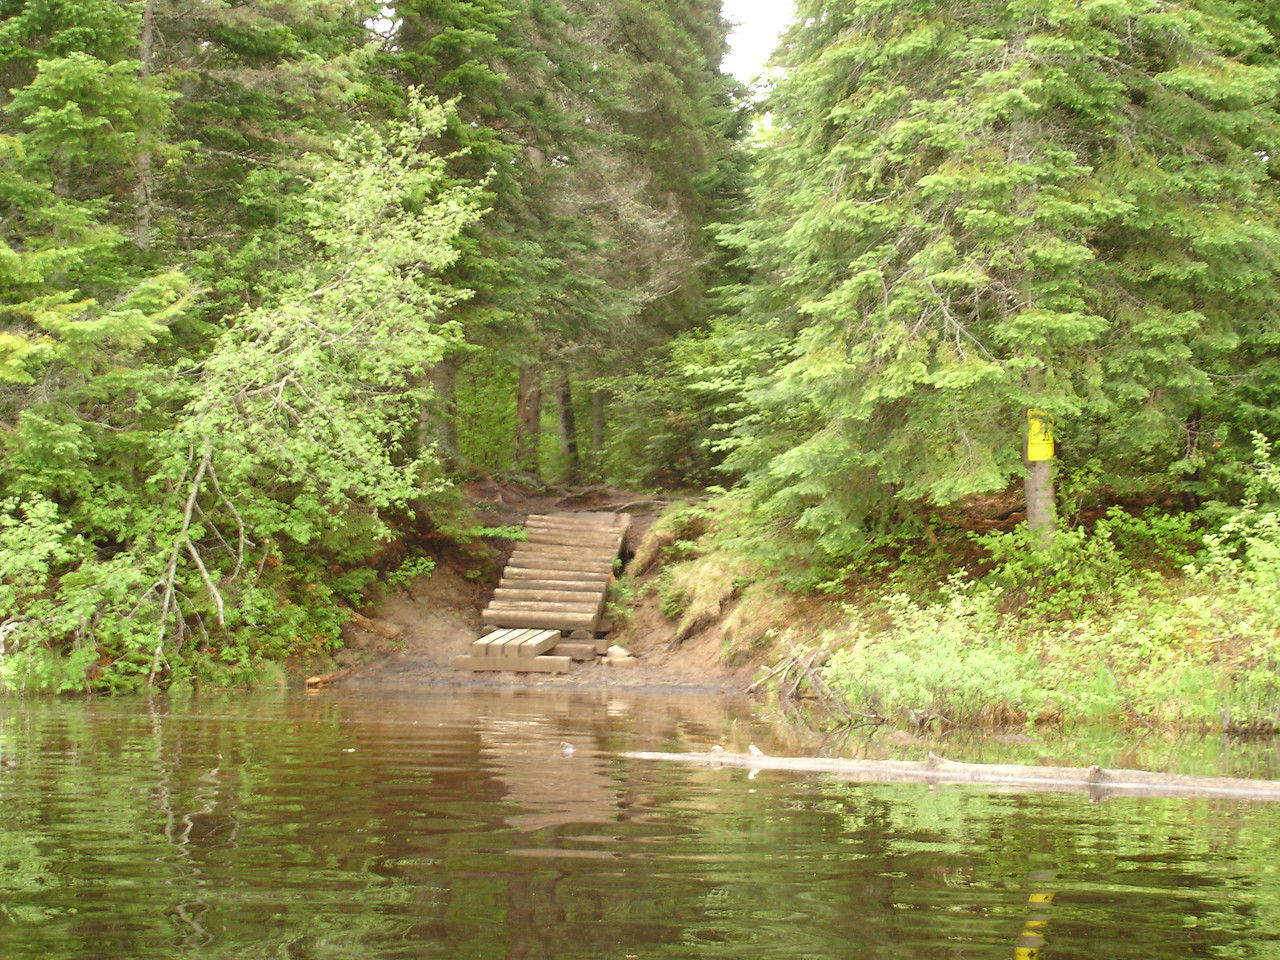 Portage steps, Little-doe Lake to Burnt Island Lake